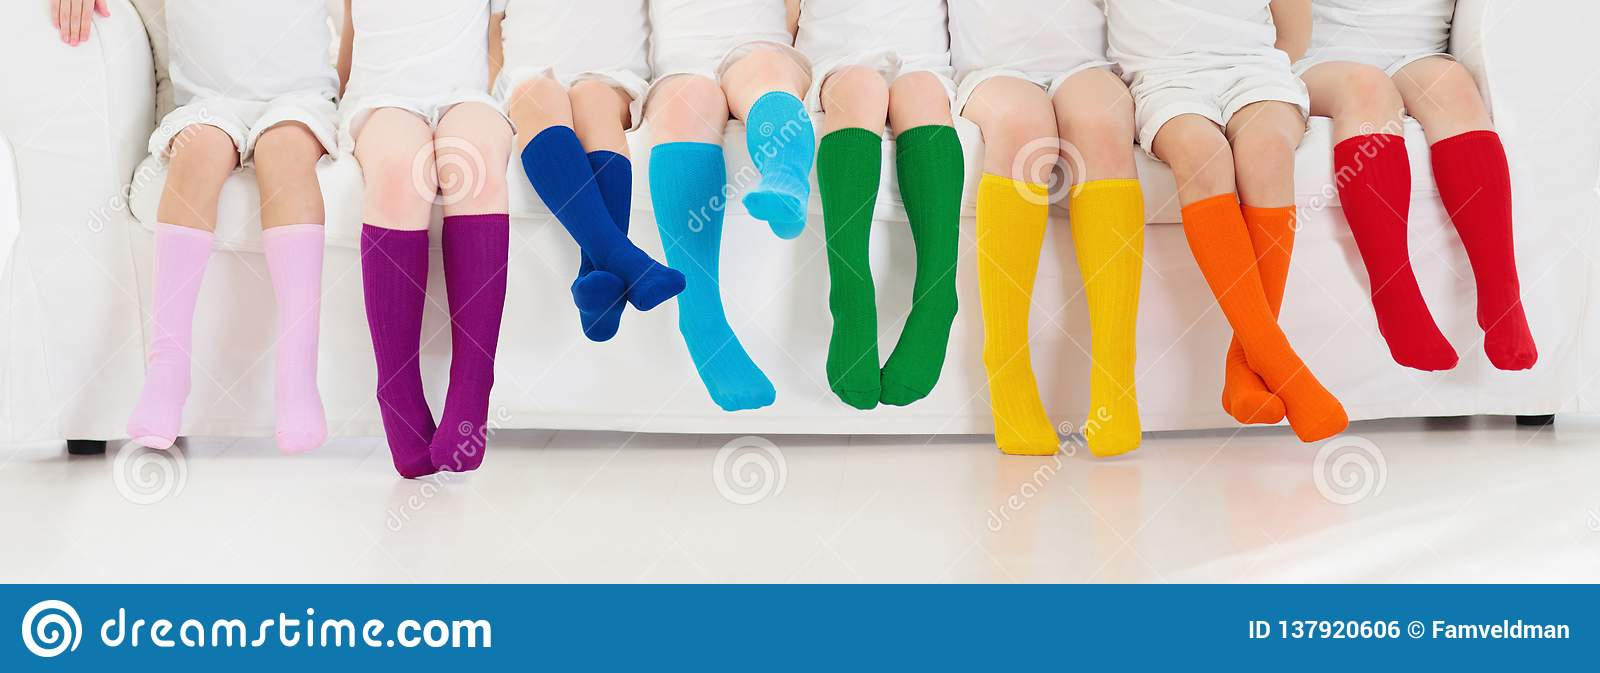 29e7fc692b2 Kids With Colorful Socks. Children Footwear Stock Photo - Image of ...